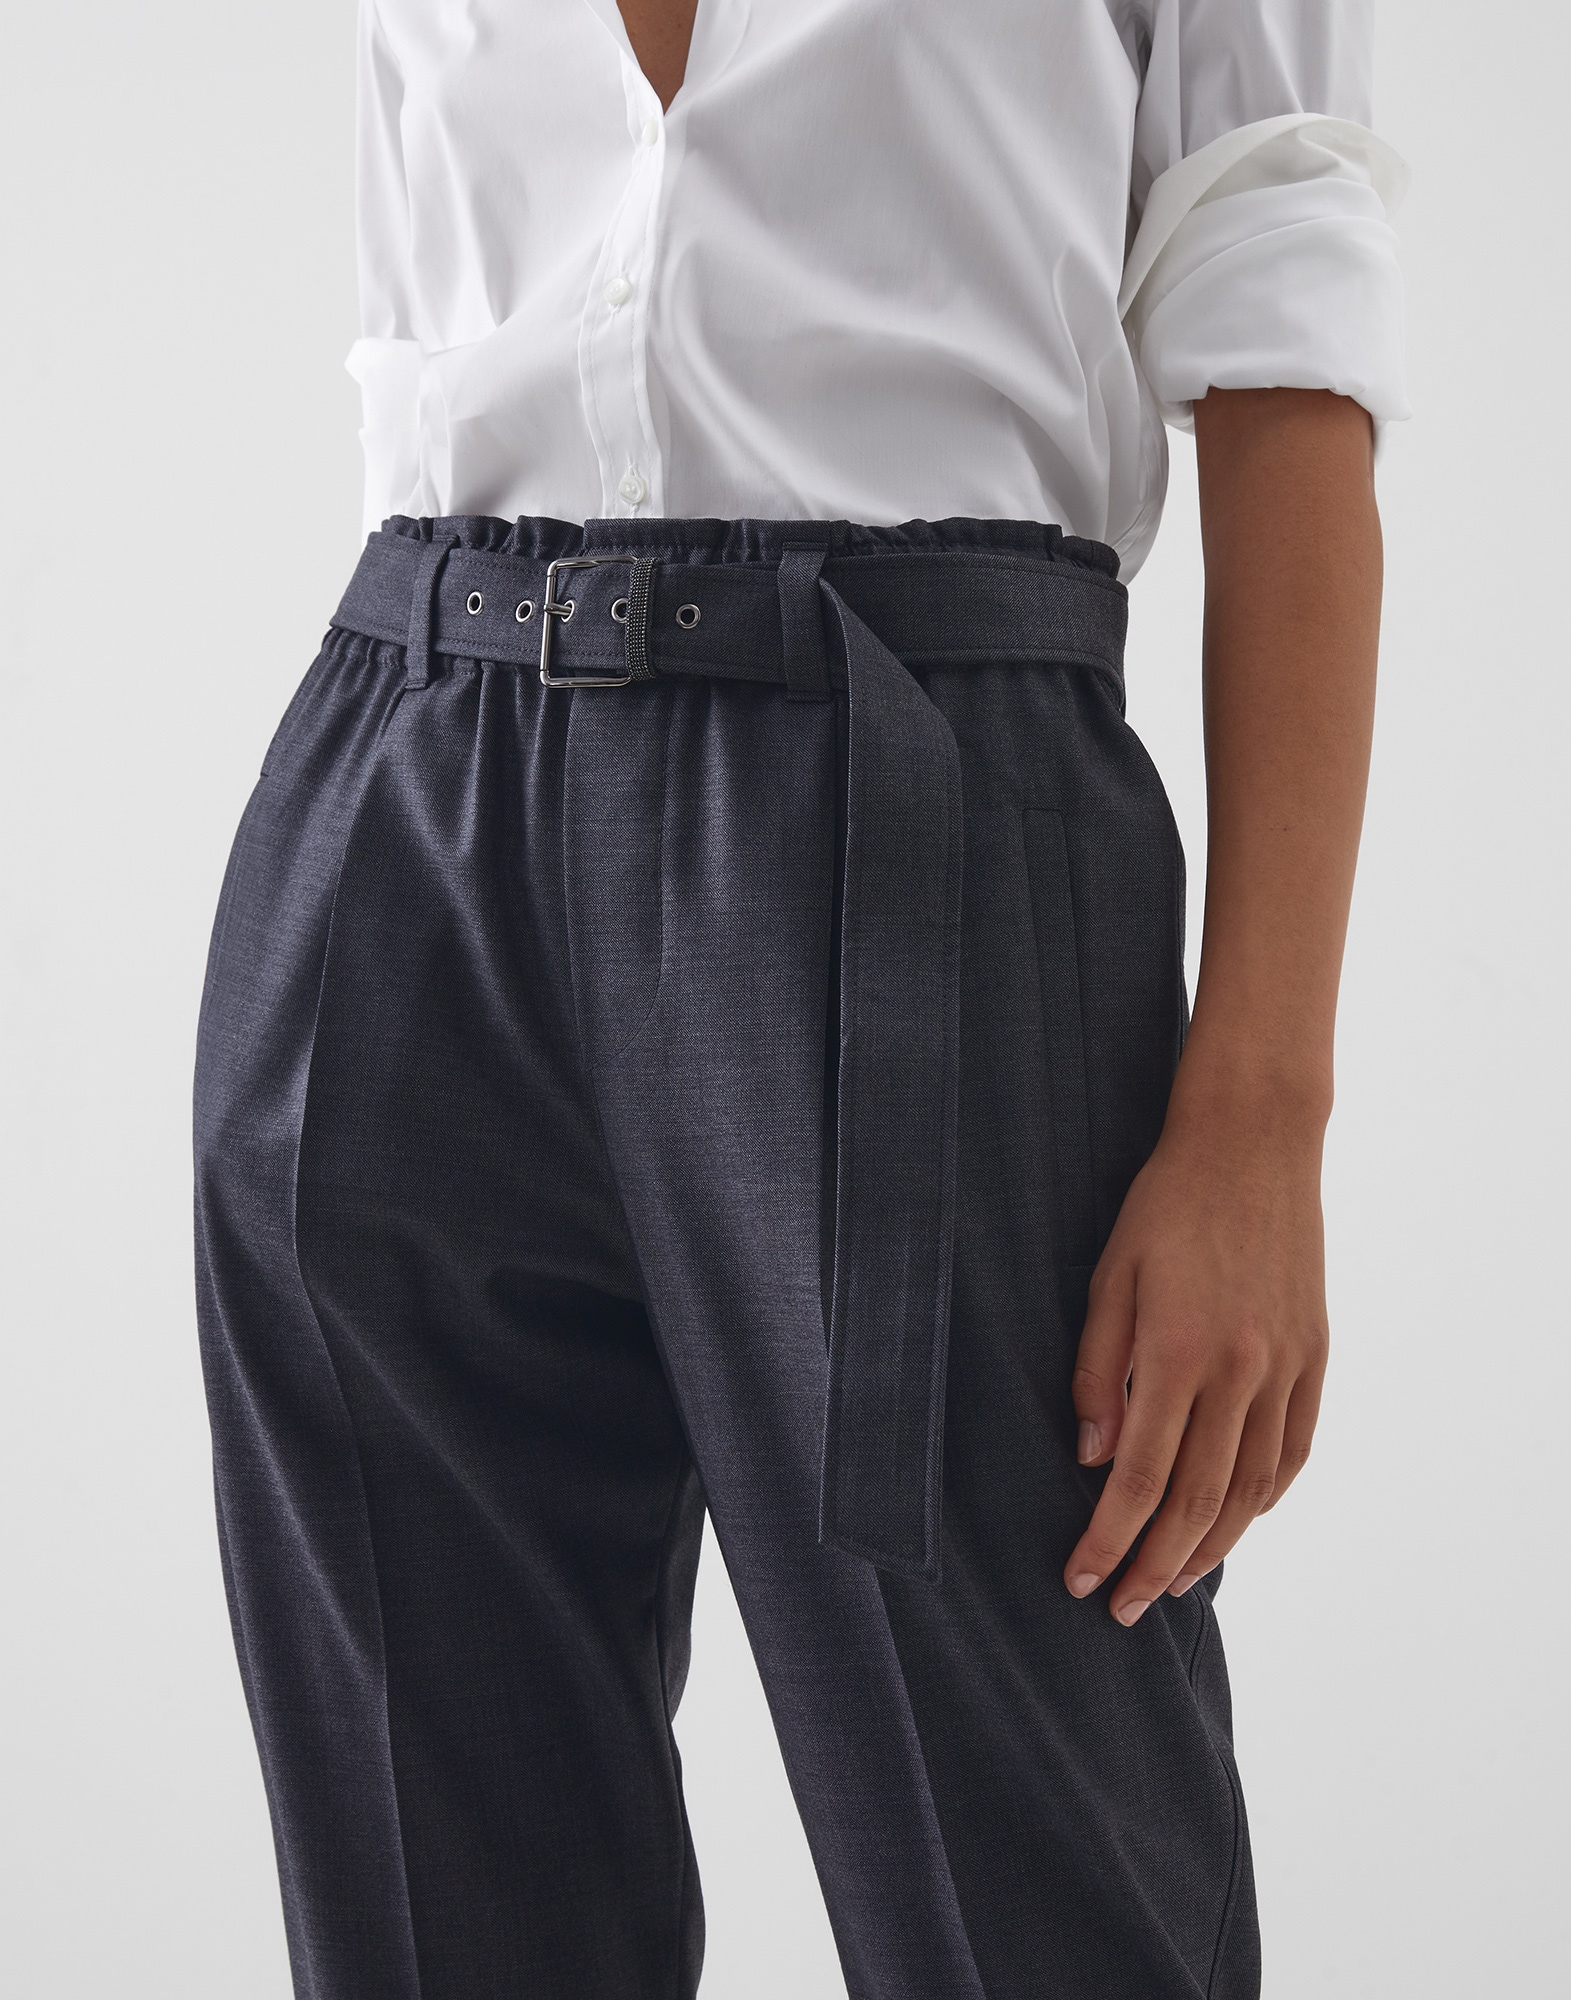 Trousers Lignite Woman 2 - Brunello Cucinelli